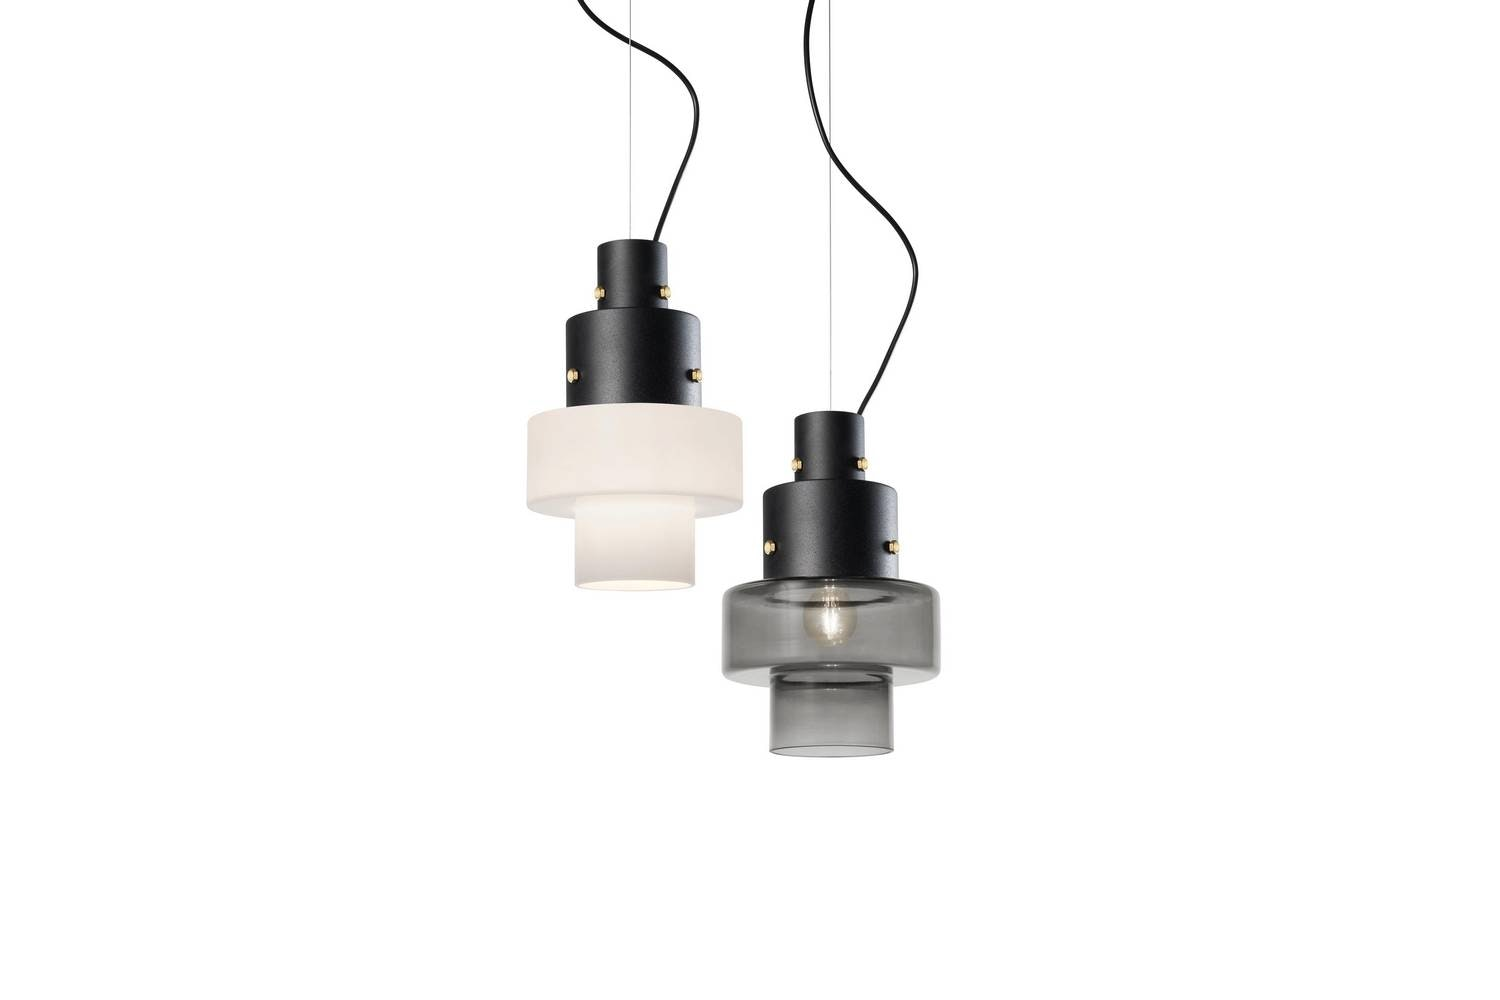 Gask Suspension Lamp by Successful Living from DIESEL for Foscarini